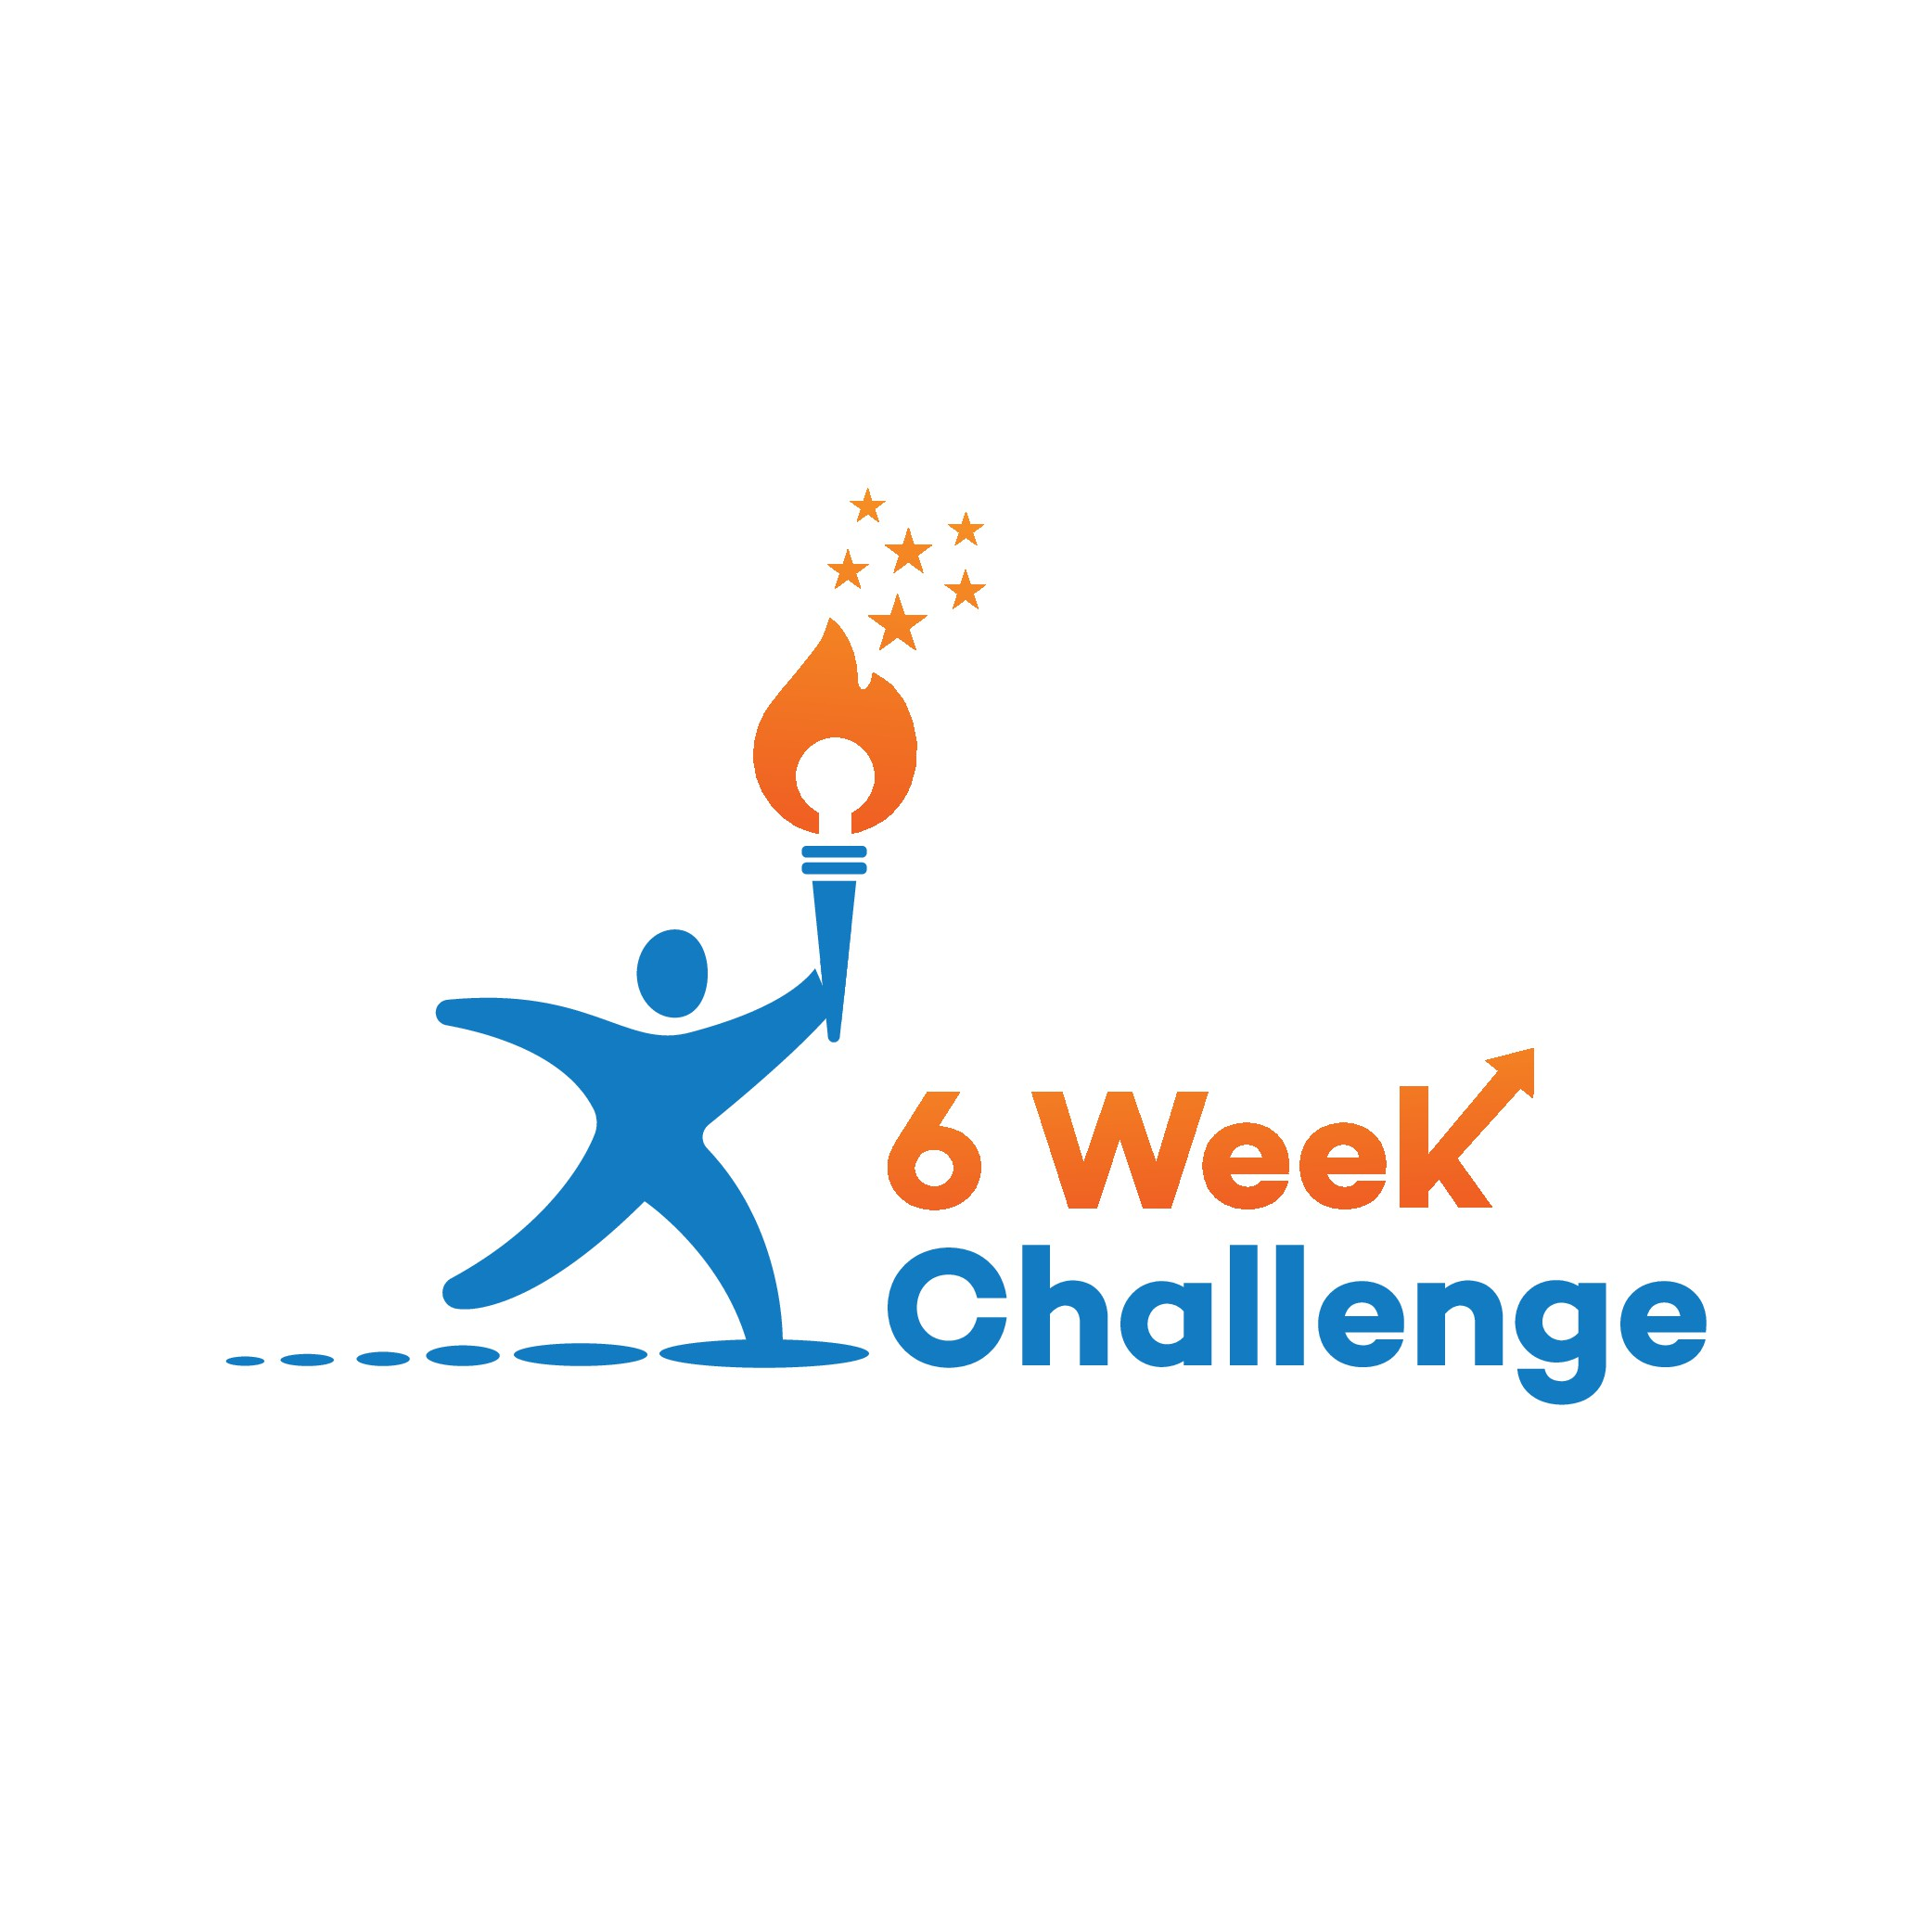 WANTED: Special designer to create 'The 6 Week Challenge' Logo to help blow my client's socks off